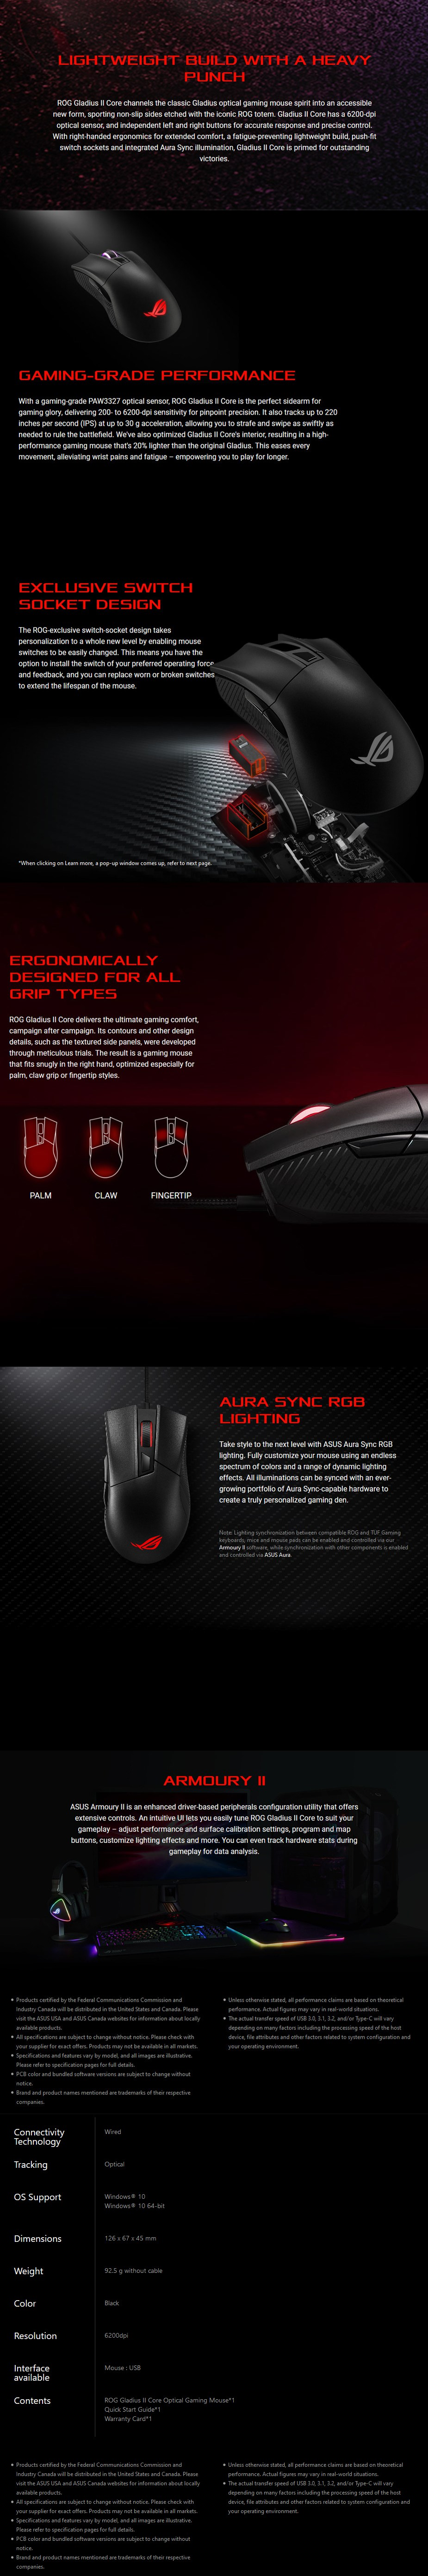 ASUS ROG Gladius II Core P507 Gaming Mouse - Desktop Overview 1